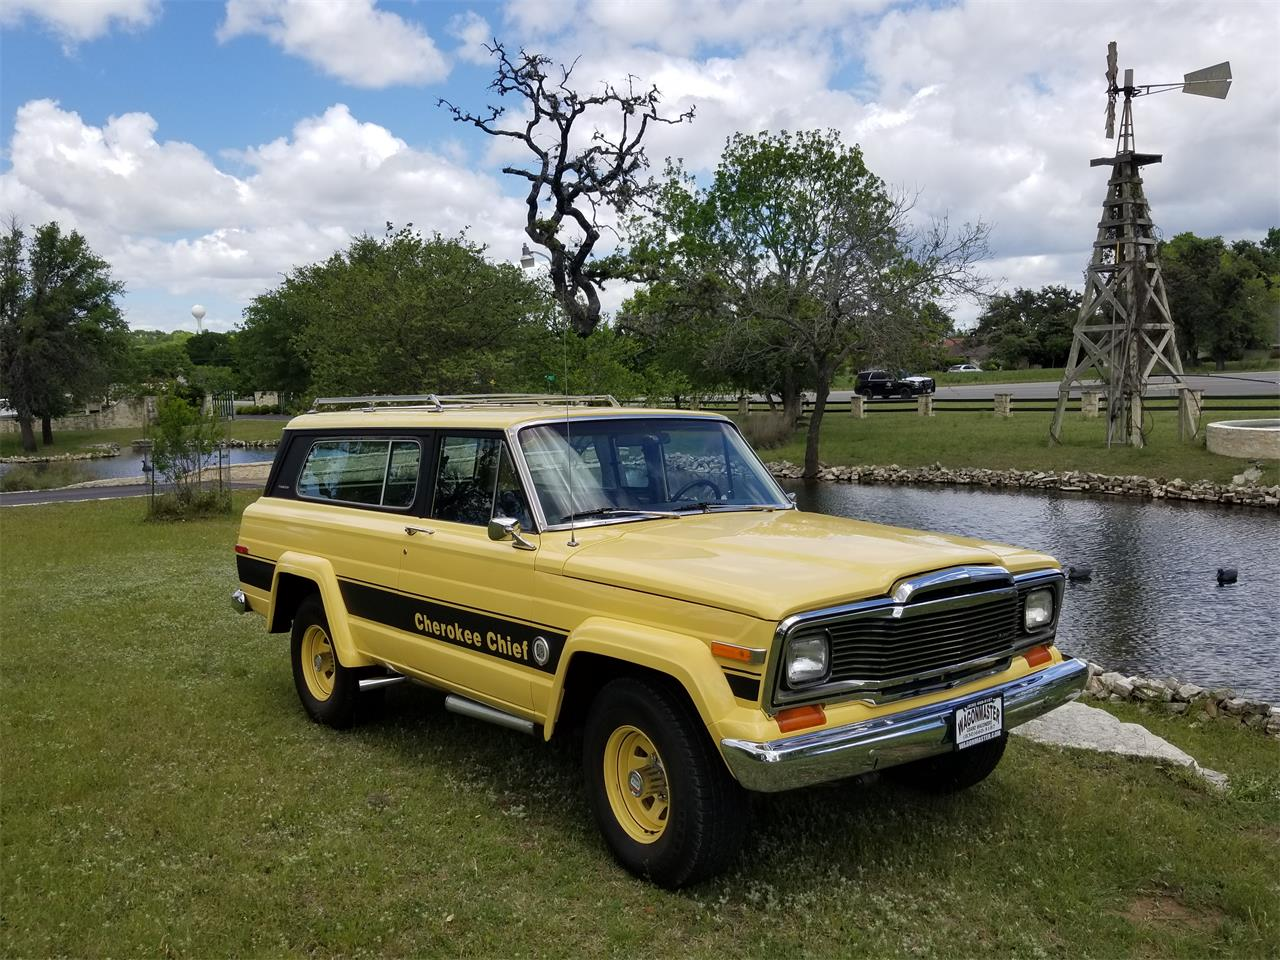 1979 Jeep Cherokee Chief for sale in Kerrville, TX – photo 28